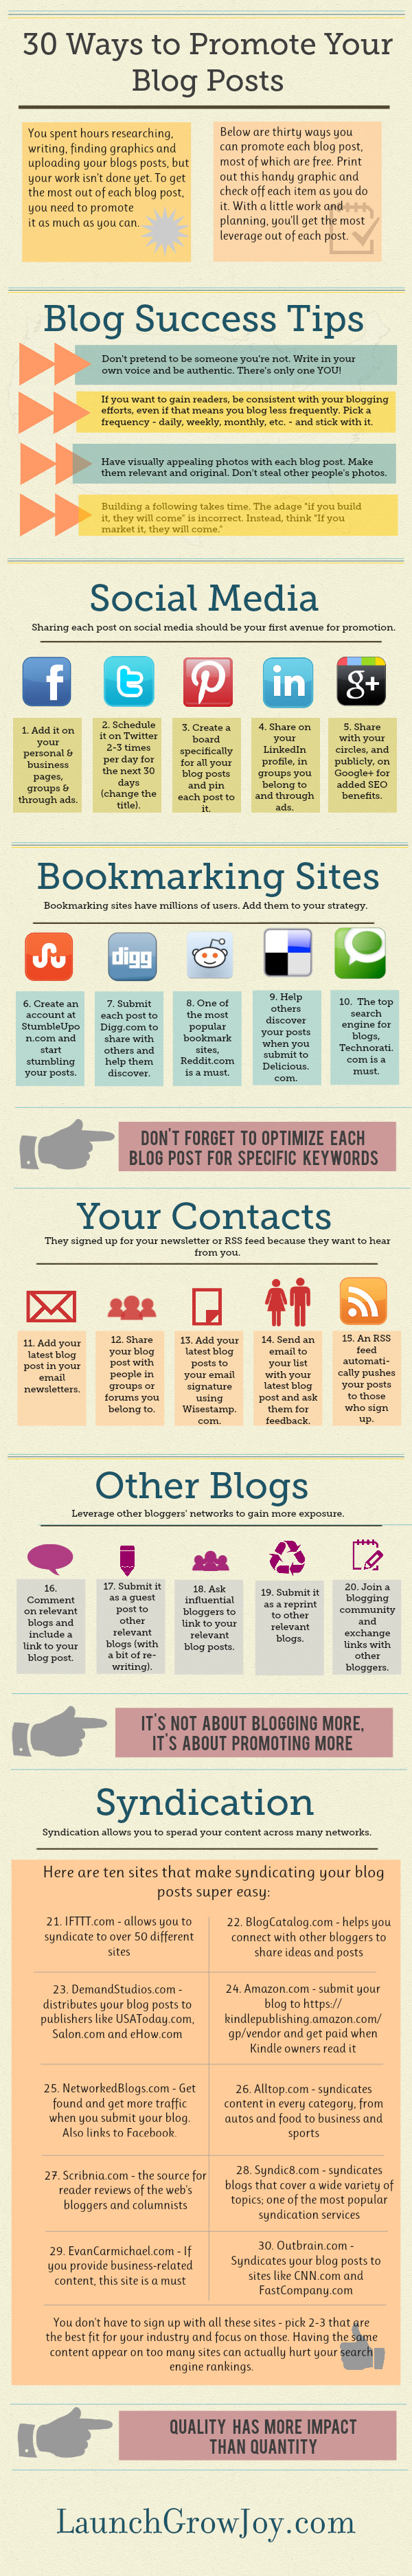 30-ways-to-promote-your-blog-posts-INFOGRAPHIC